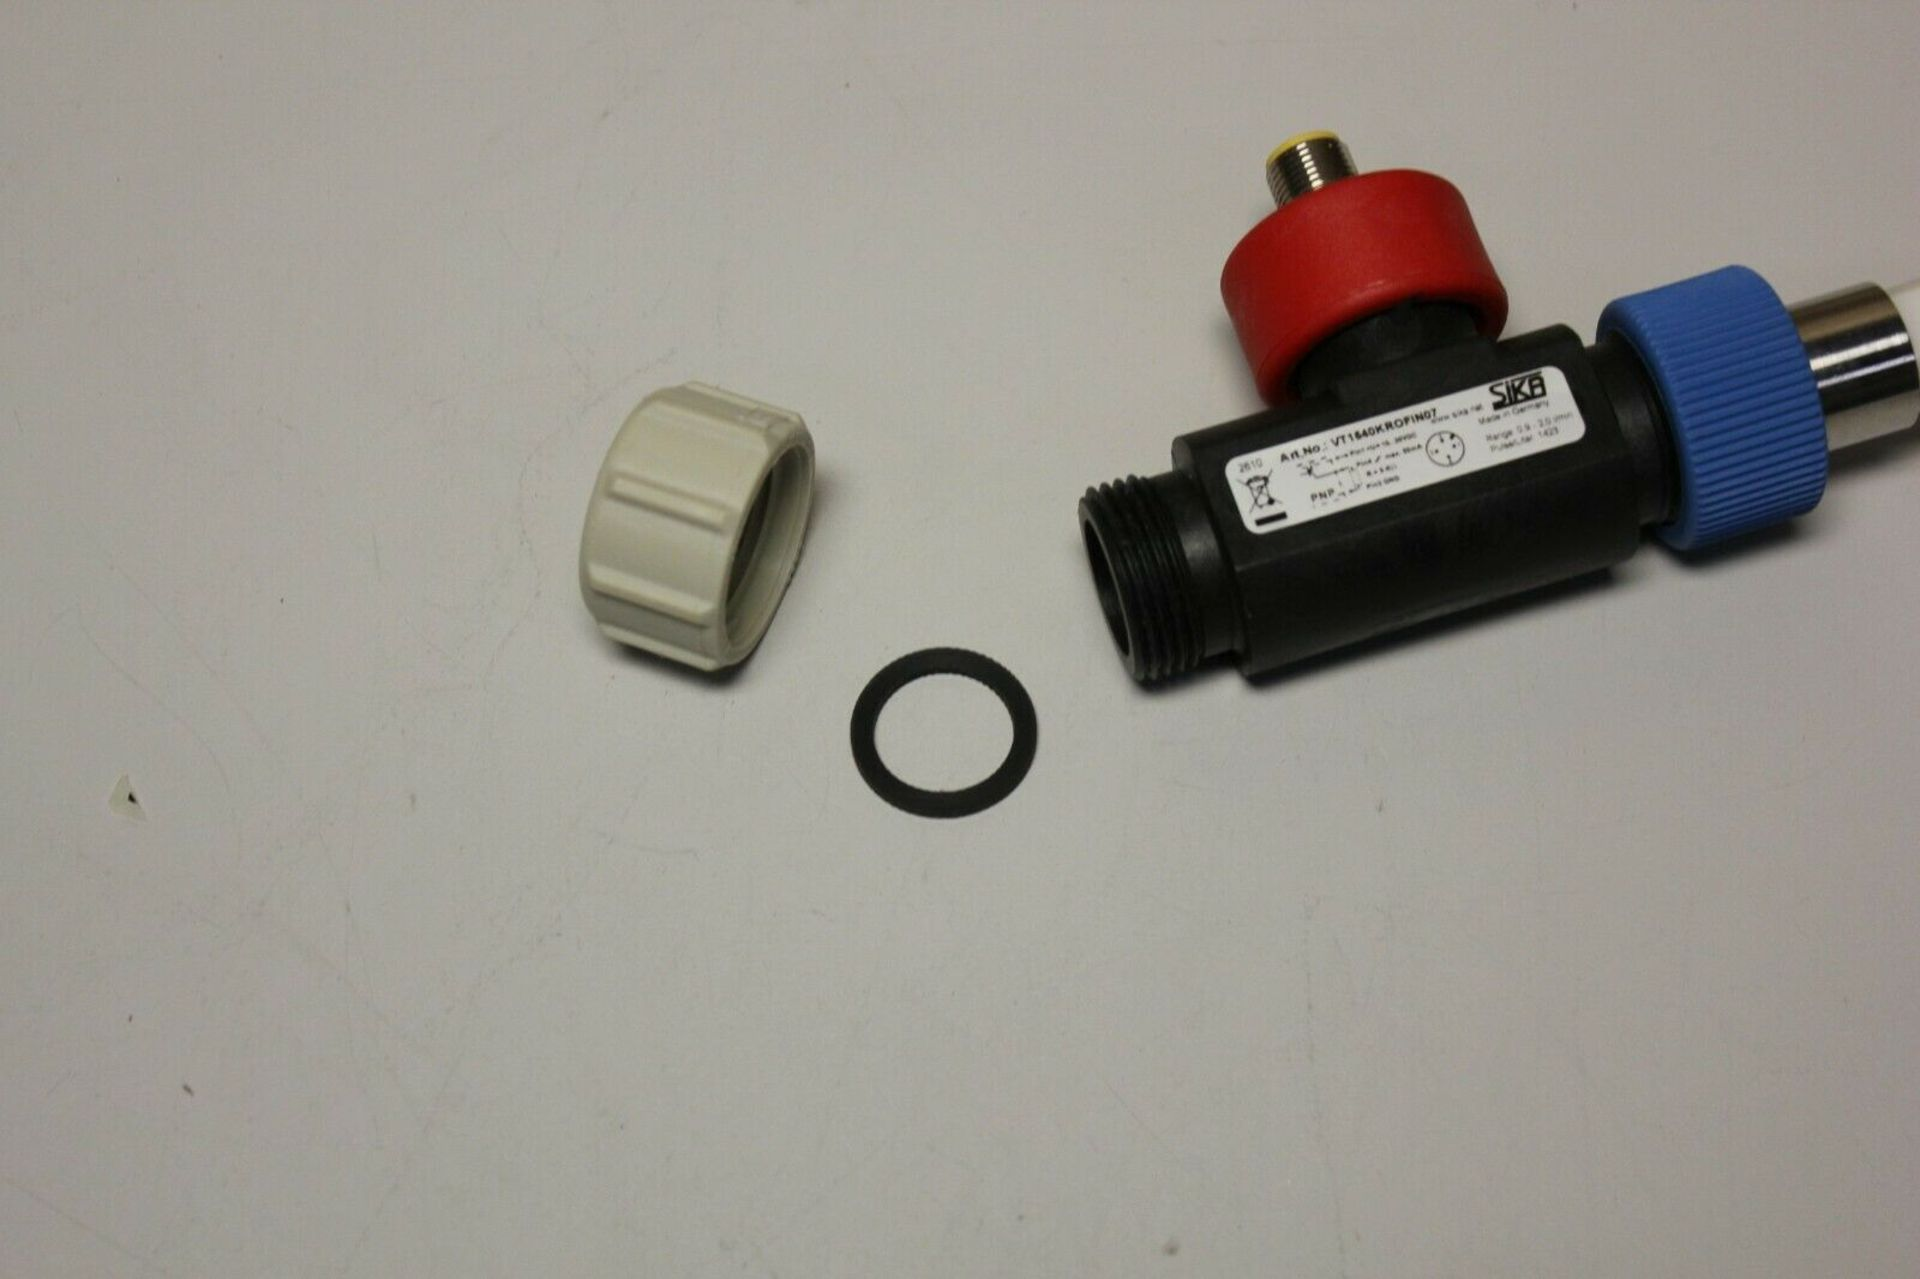 SIKA TURBINE FLOW SENSOR WITH CABLE - Image 9 of 10